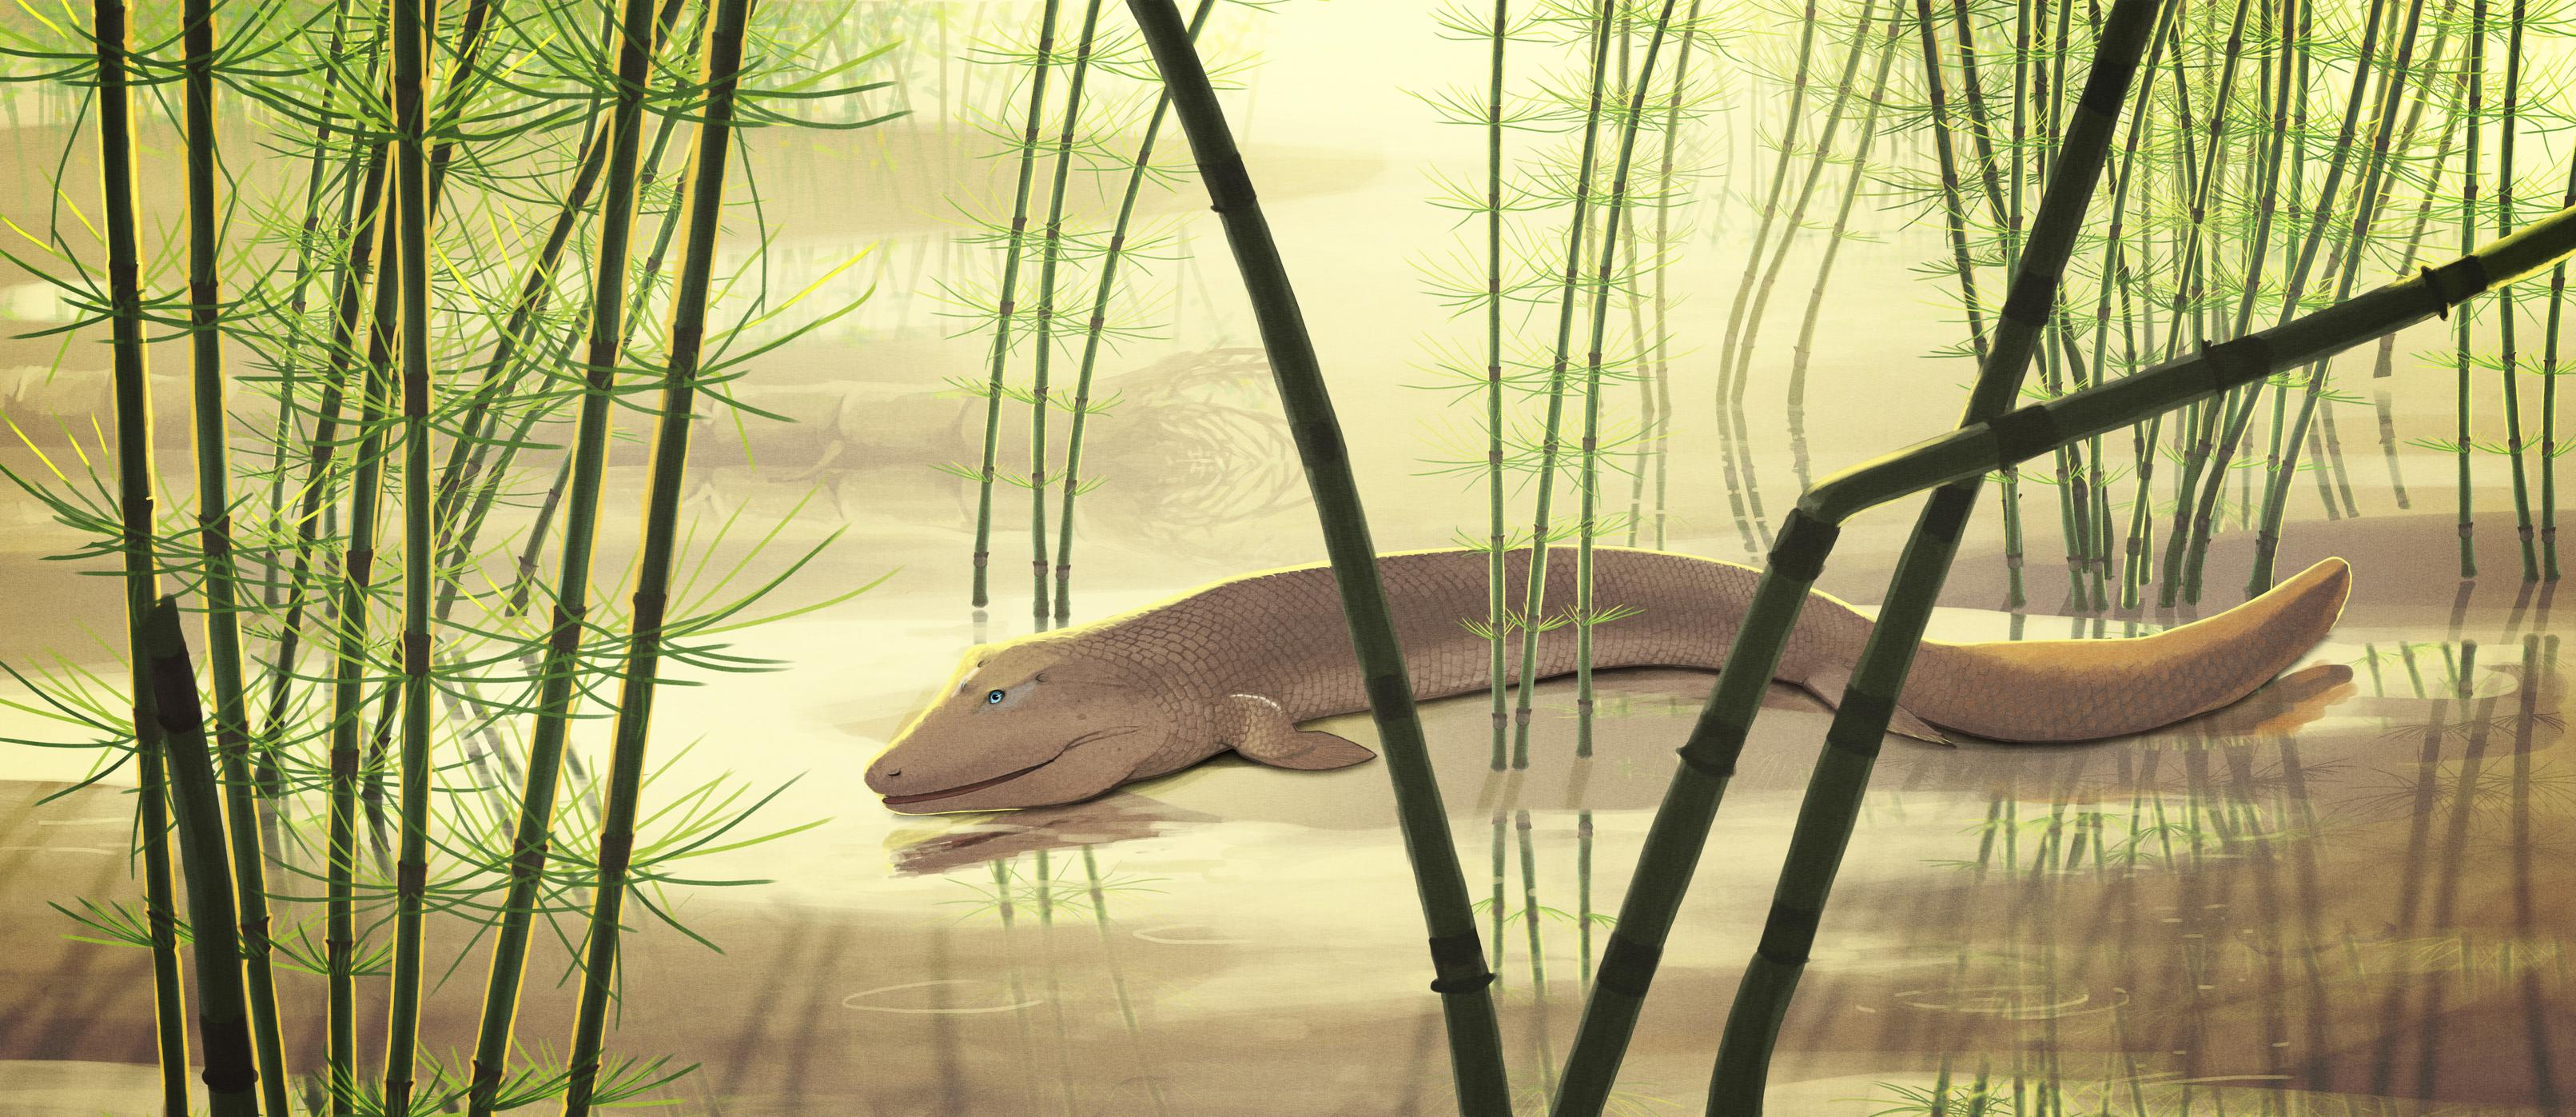 palaeo, painting, fish, transitional, canada, north america, devonian, old blue eyes